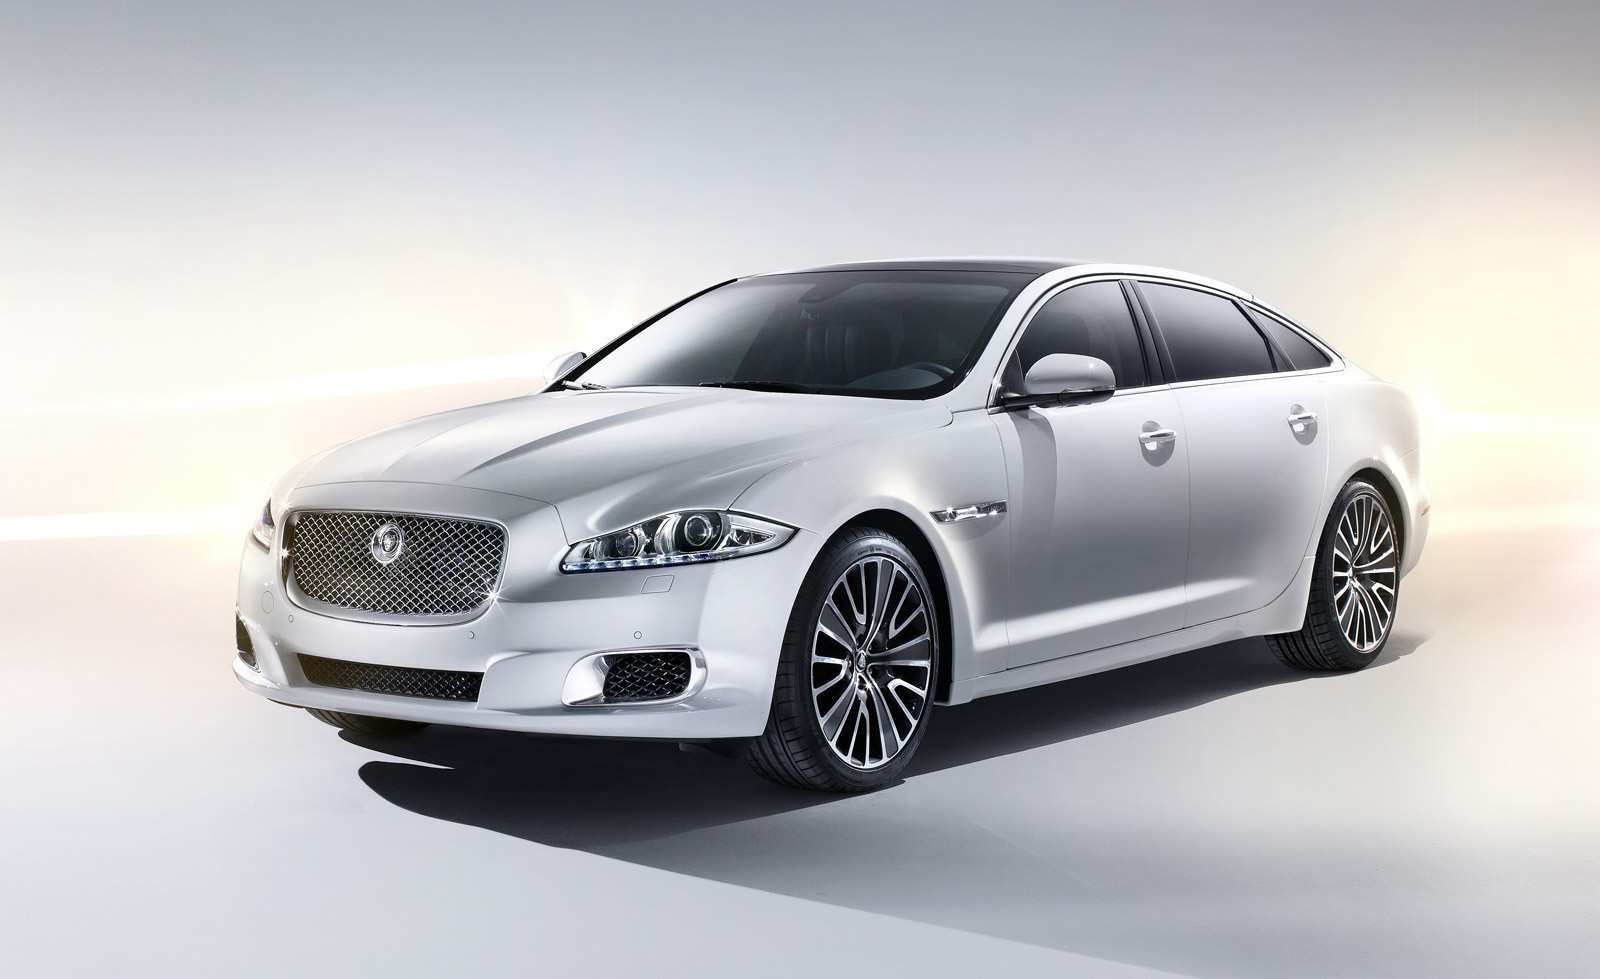 78 All New The 2019 Jaguar Xj Autobiography Redesign Images with The 2019 Jaguar Xj Autobiography Redesign